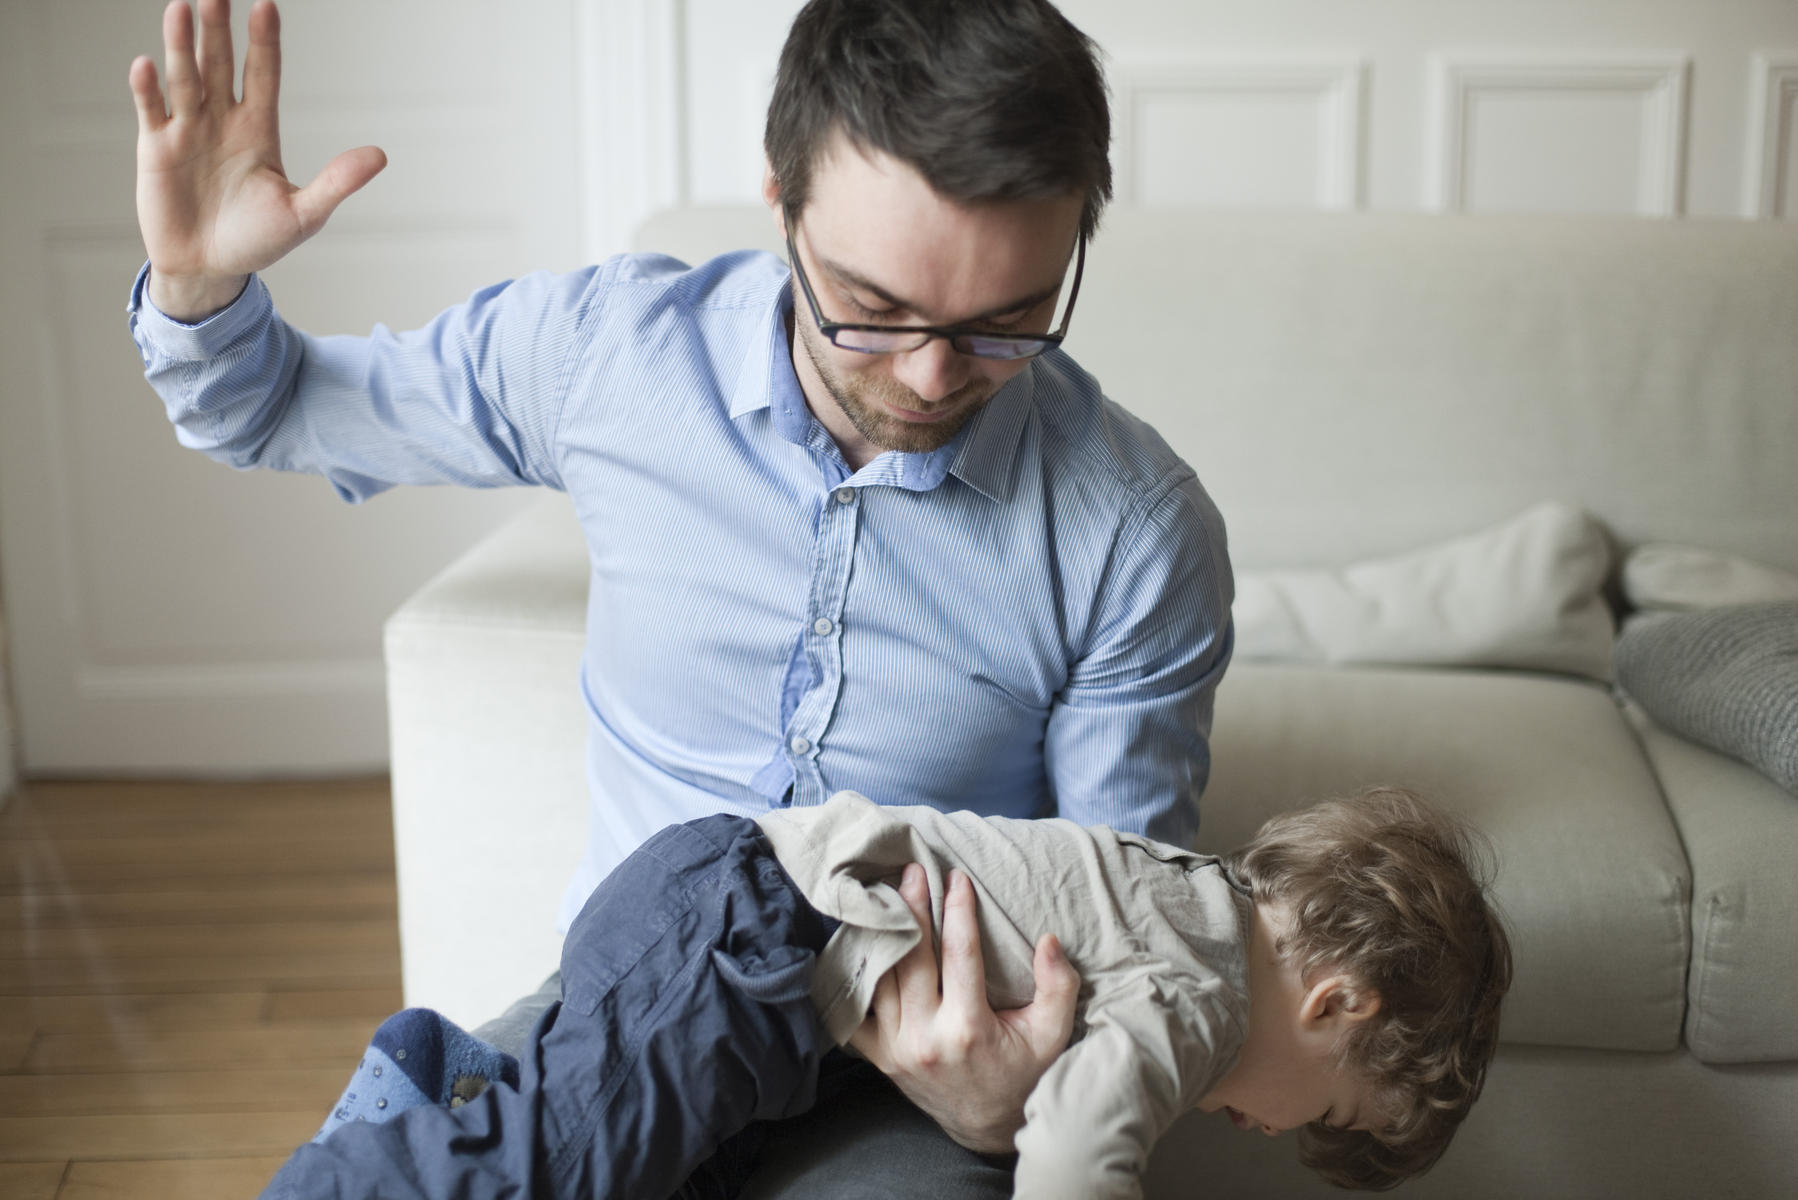 Whoa: France Just Made Spanking Illegal